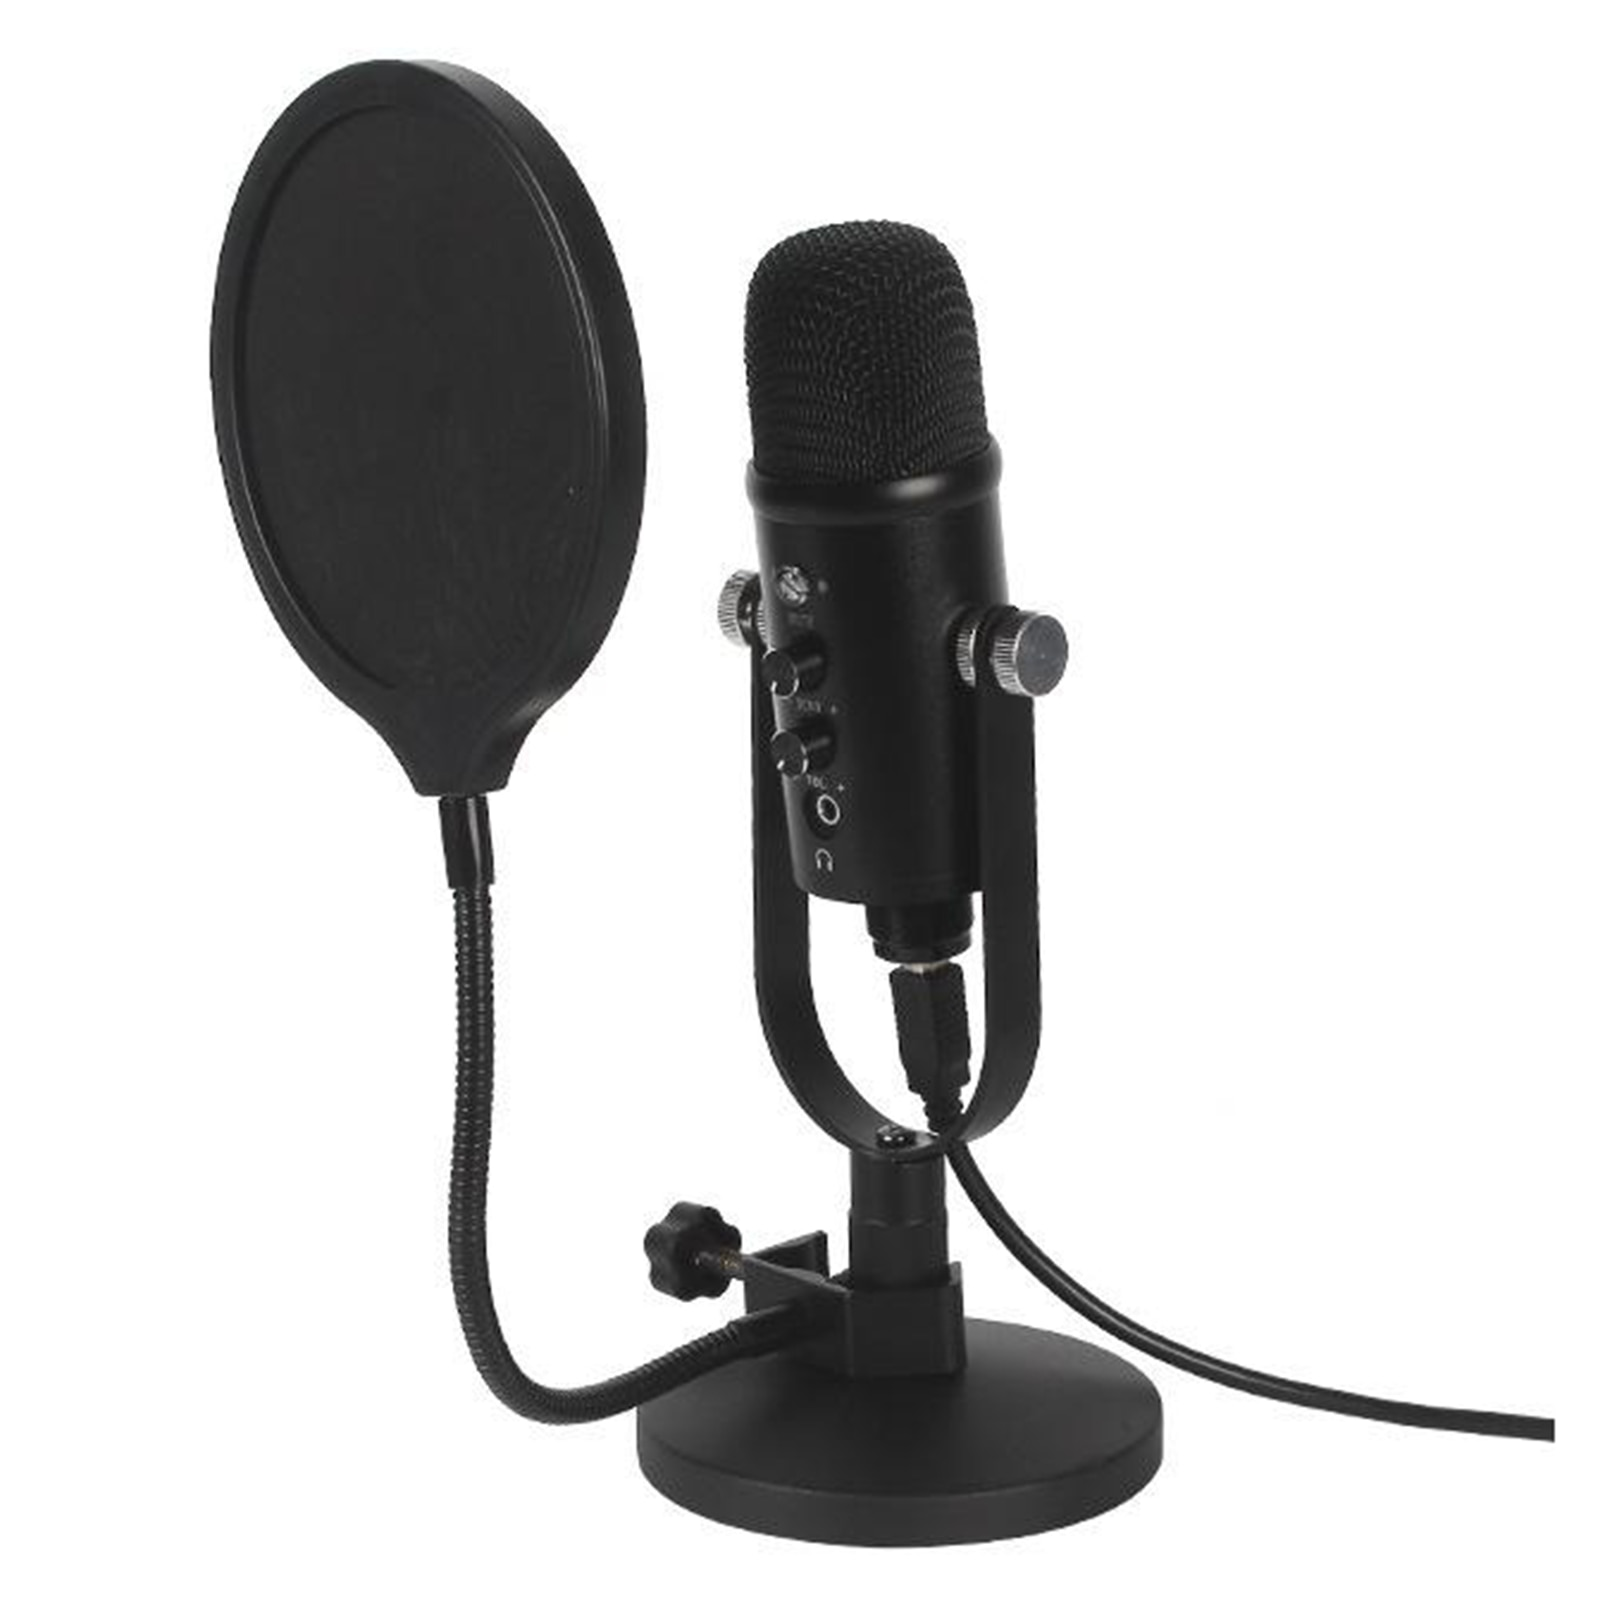 Professional USB Studio Condenser Microphone Desk Stand with  Filter enlarge